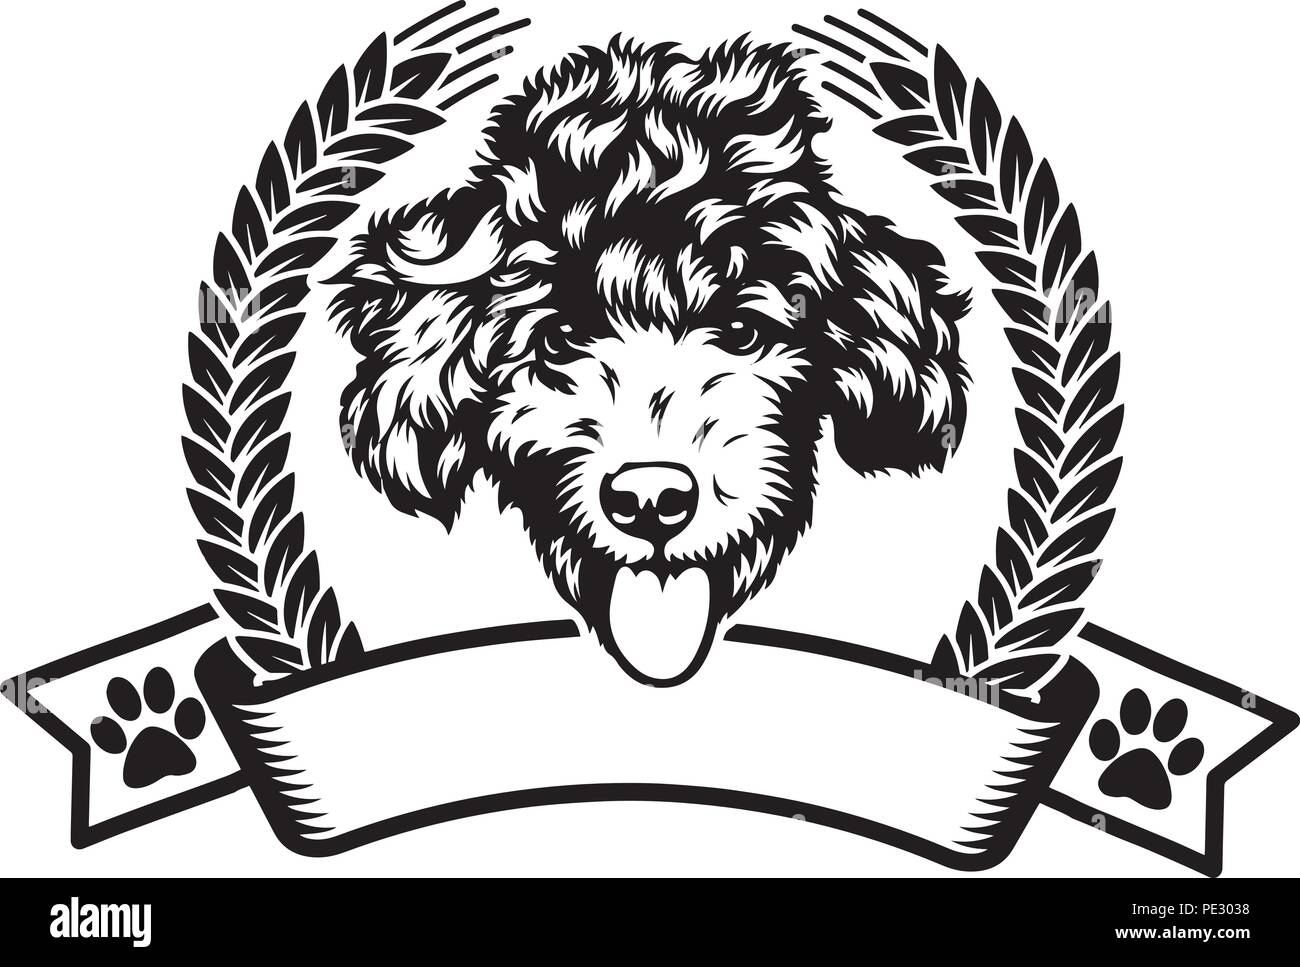 Poodle Dog Dog Breed Pet Puppy Isolated Head Face Stock Vector